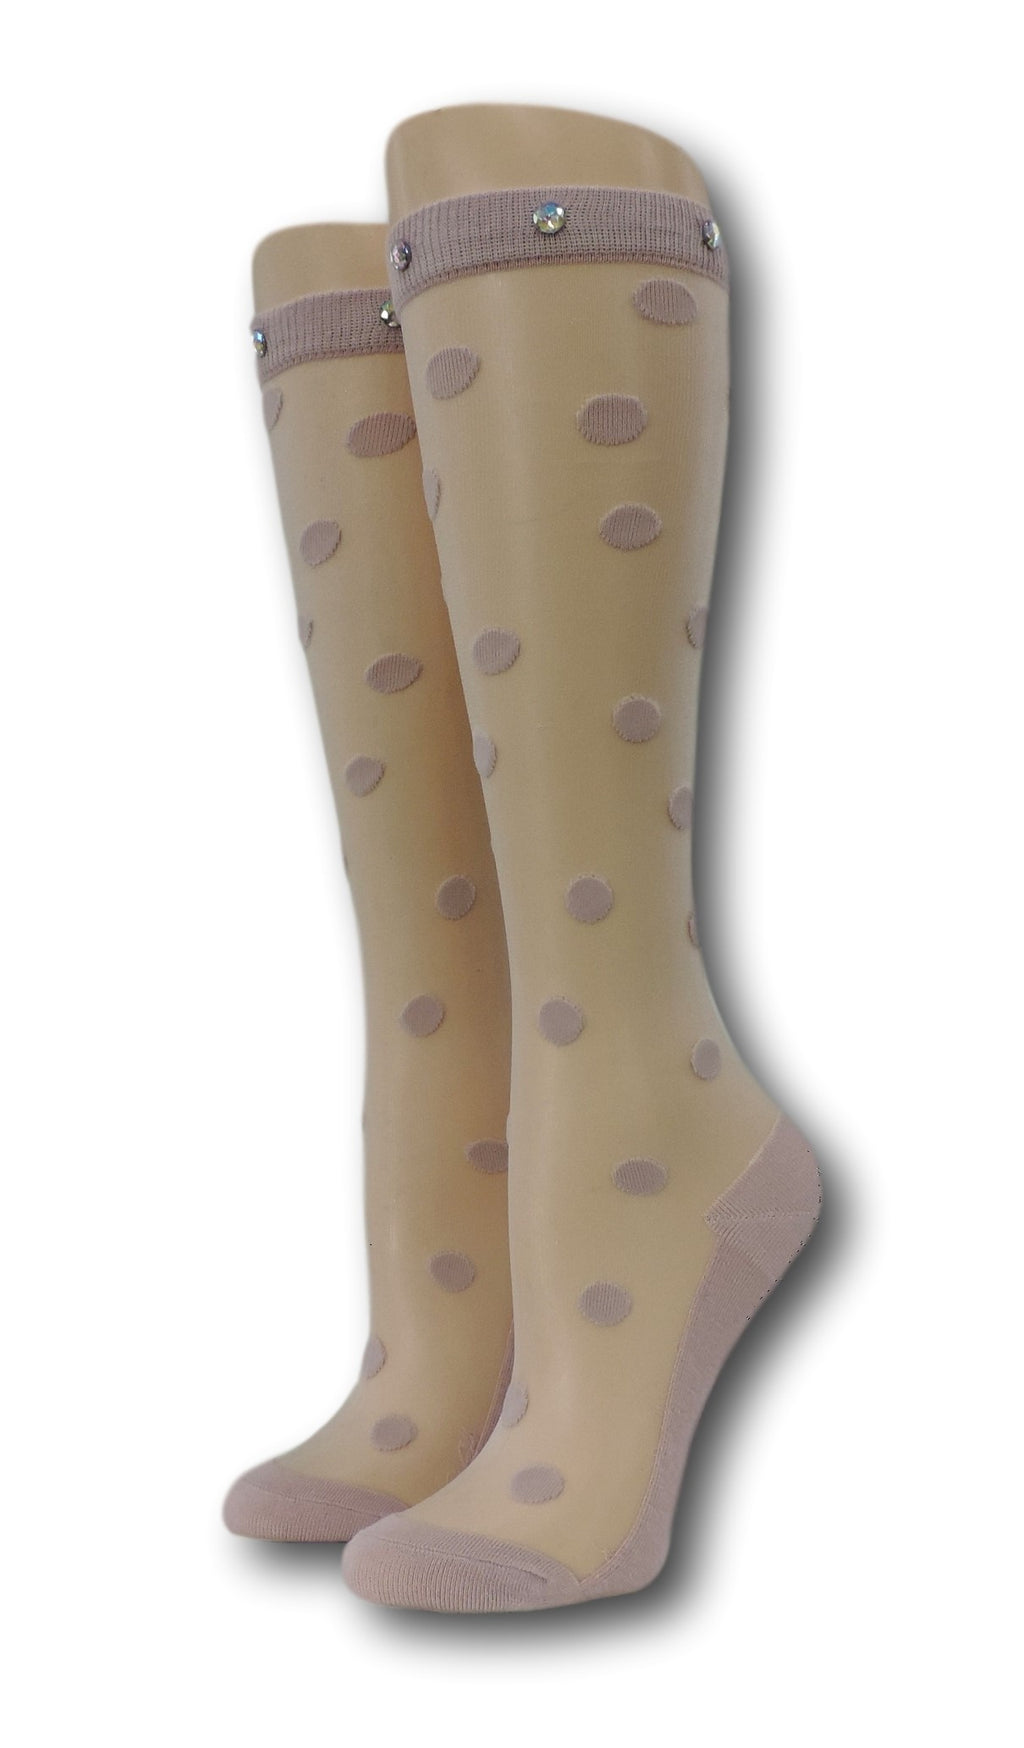 Pink Polka Knee High Sheer Socks with beads